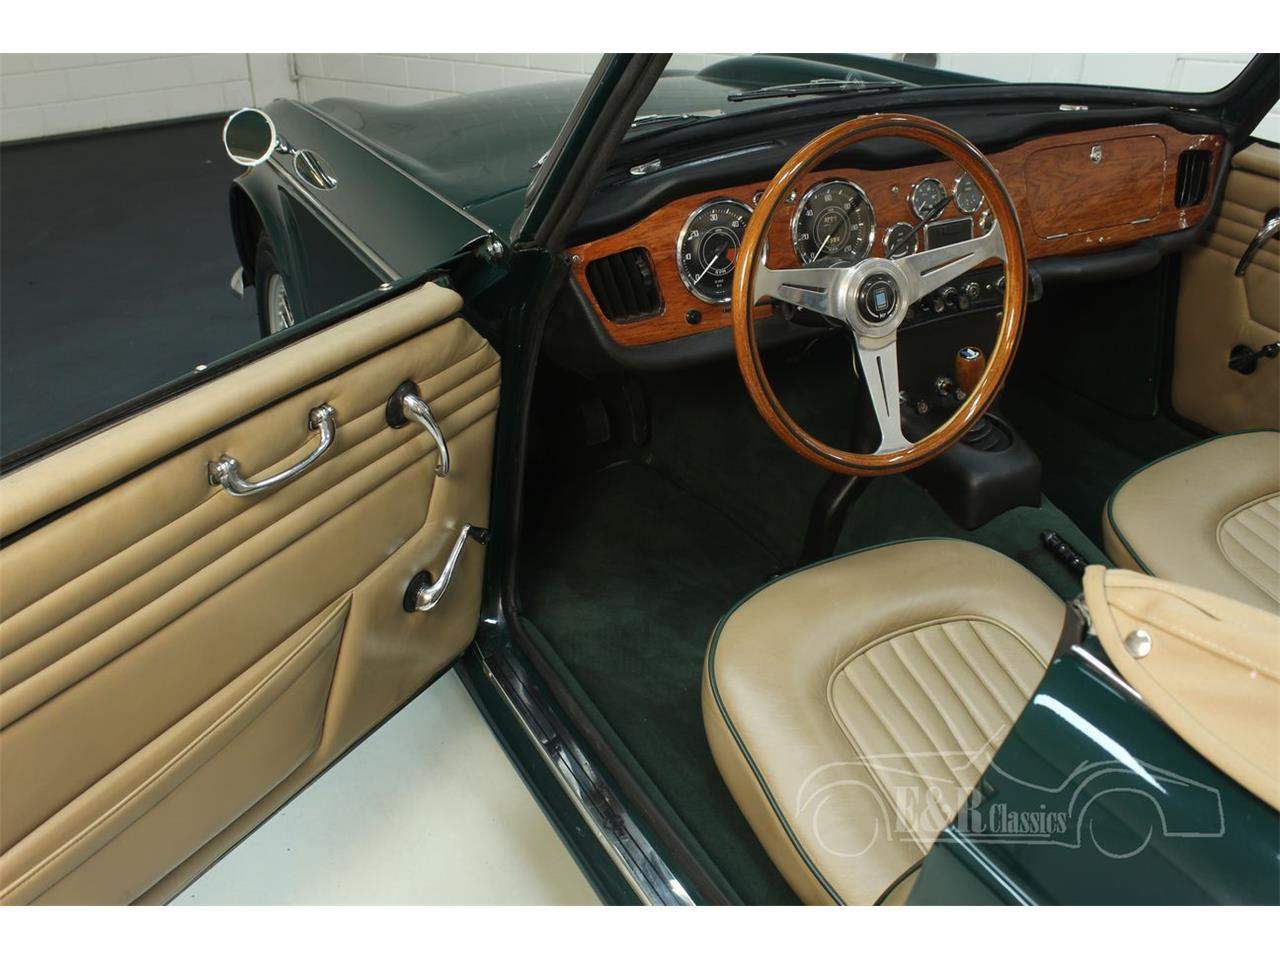 Large Picture of 1967 Triumph TR4 located in Noord-Brabant - $55,750.00 - Q45O